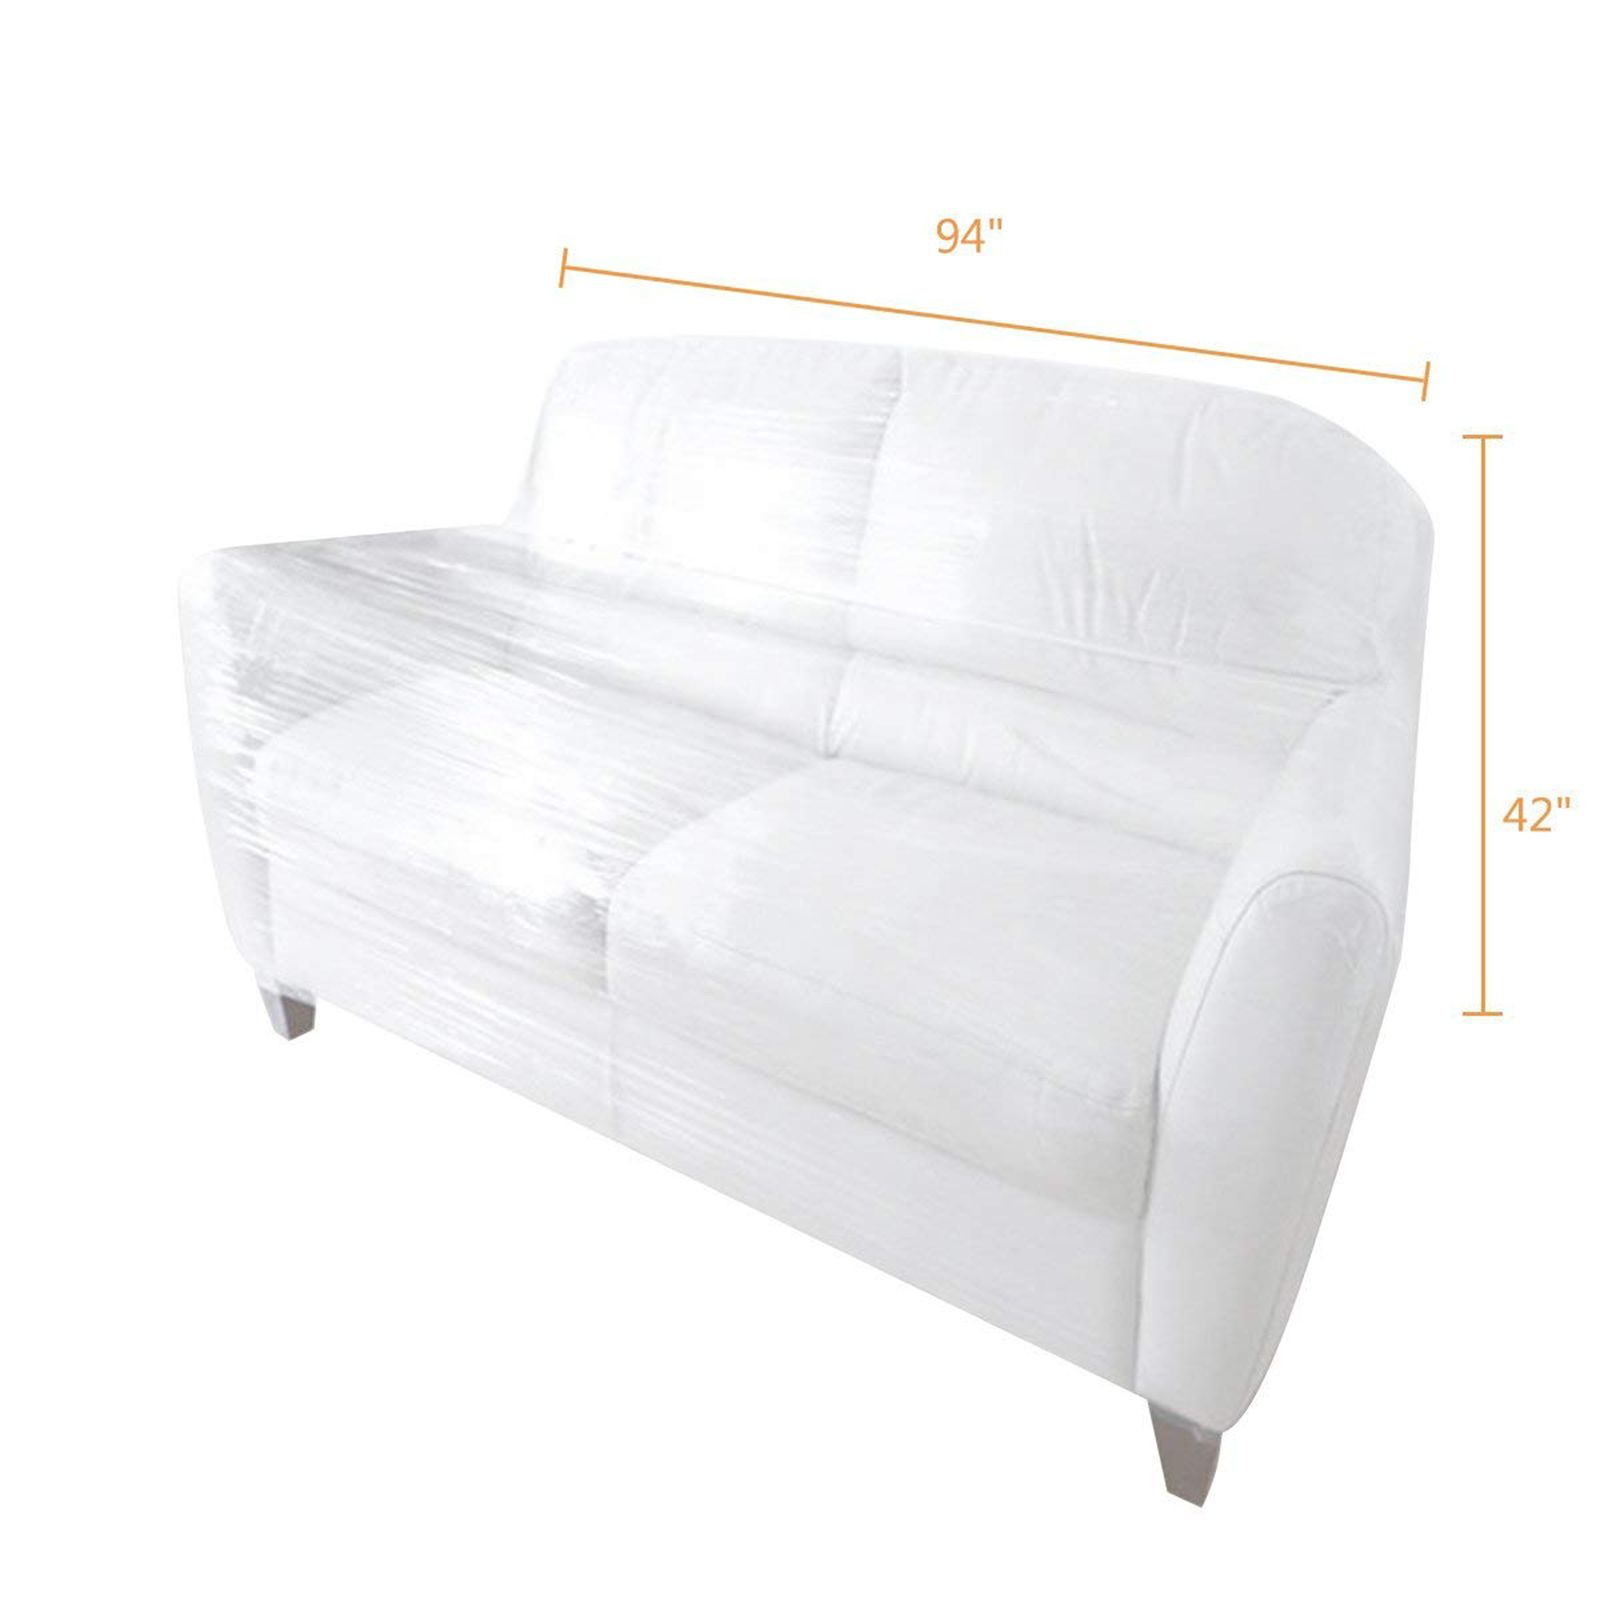 104 Reference Of Sofa Plastic Cover For Moving In 2020 Sofa Bed Design Grey Mid Century Modern Sofa Sofa